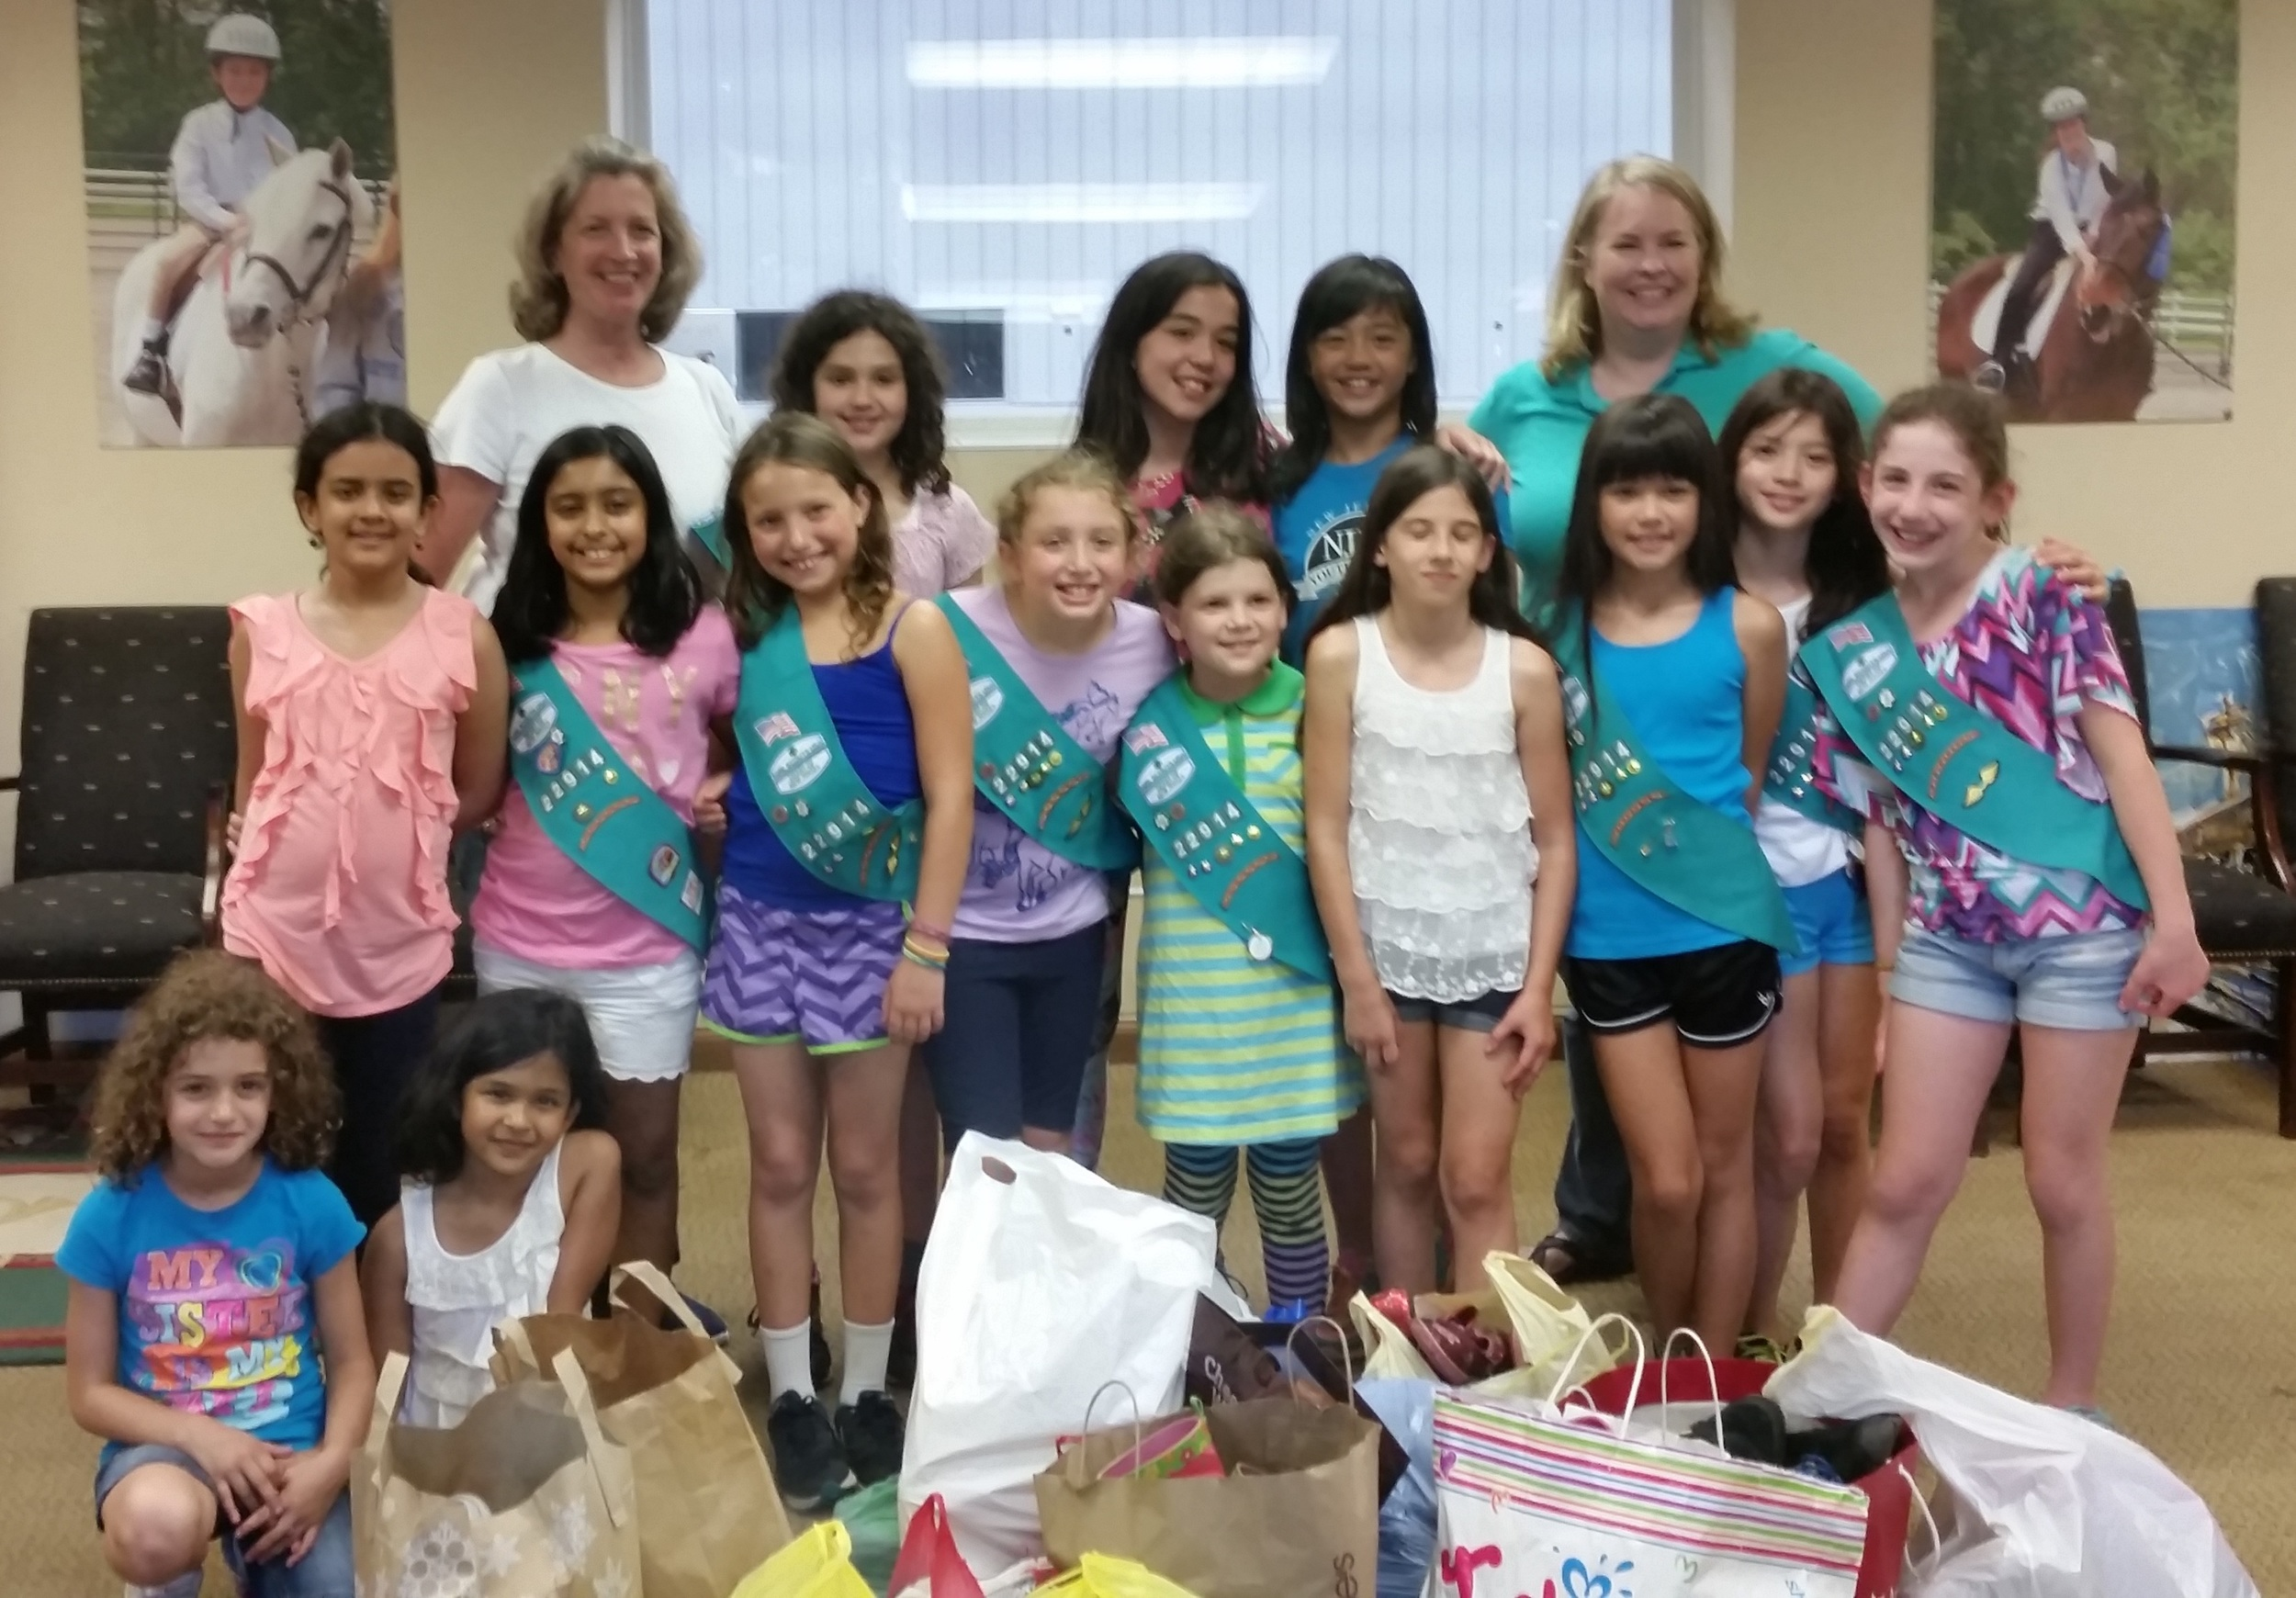 Girl Scout Troop #22914 from Short Hills